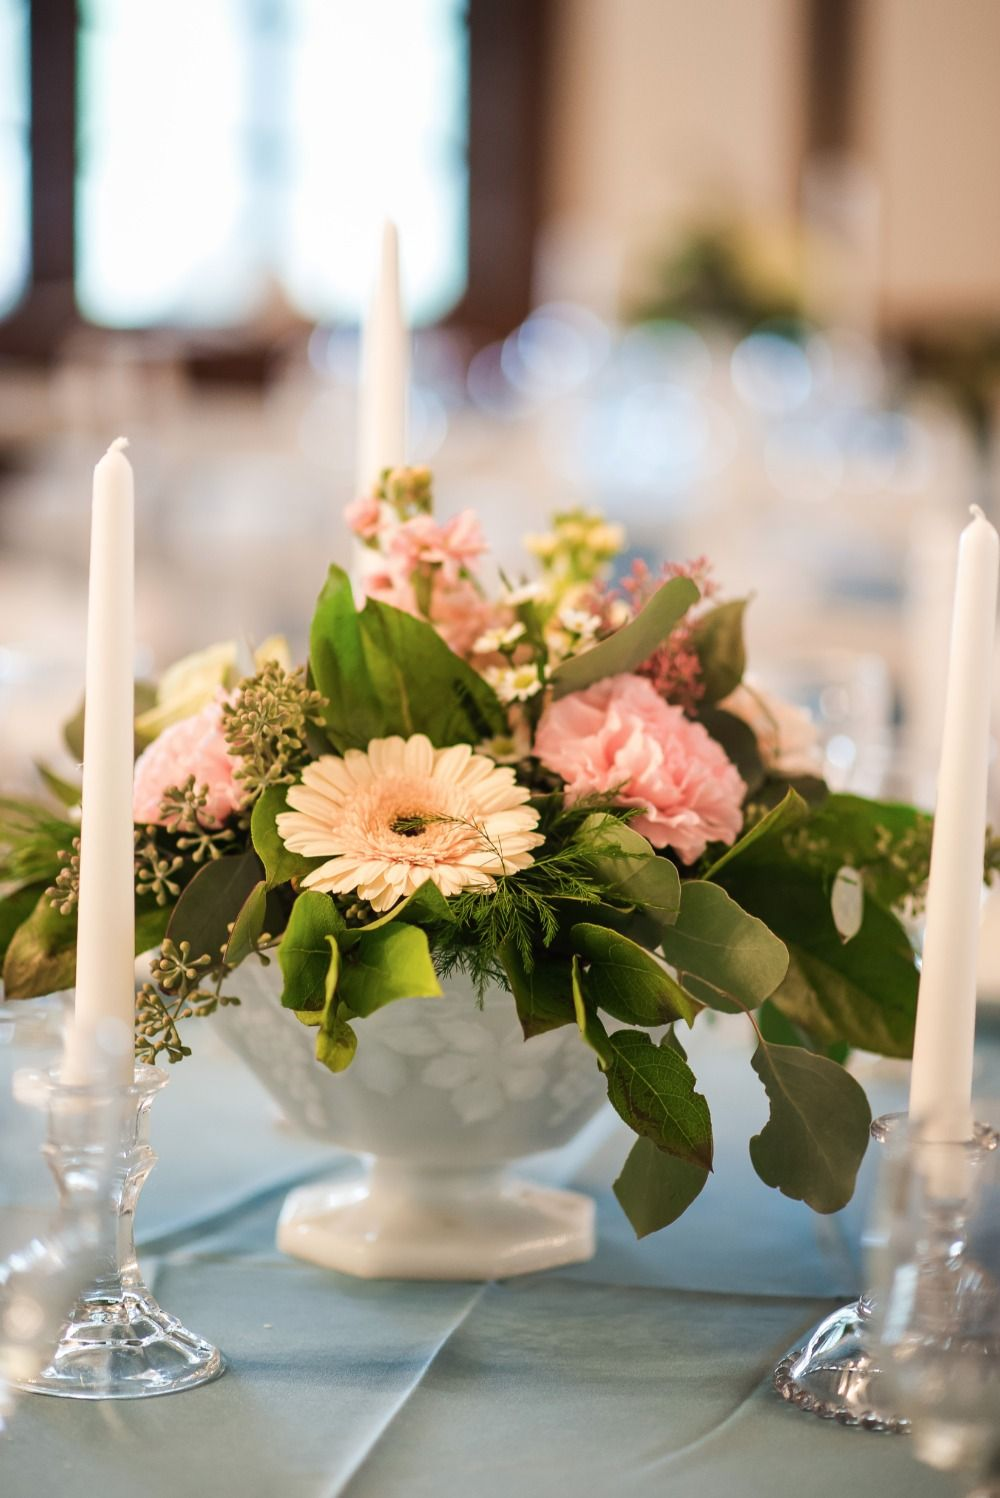 Wedding decorations simple  Natural Preppy Cottage Wedding  Floral centerpieces Centerpieces